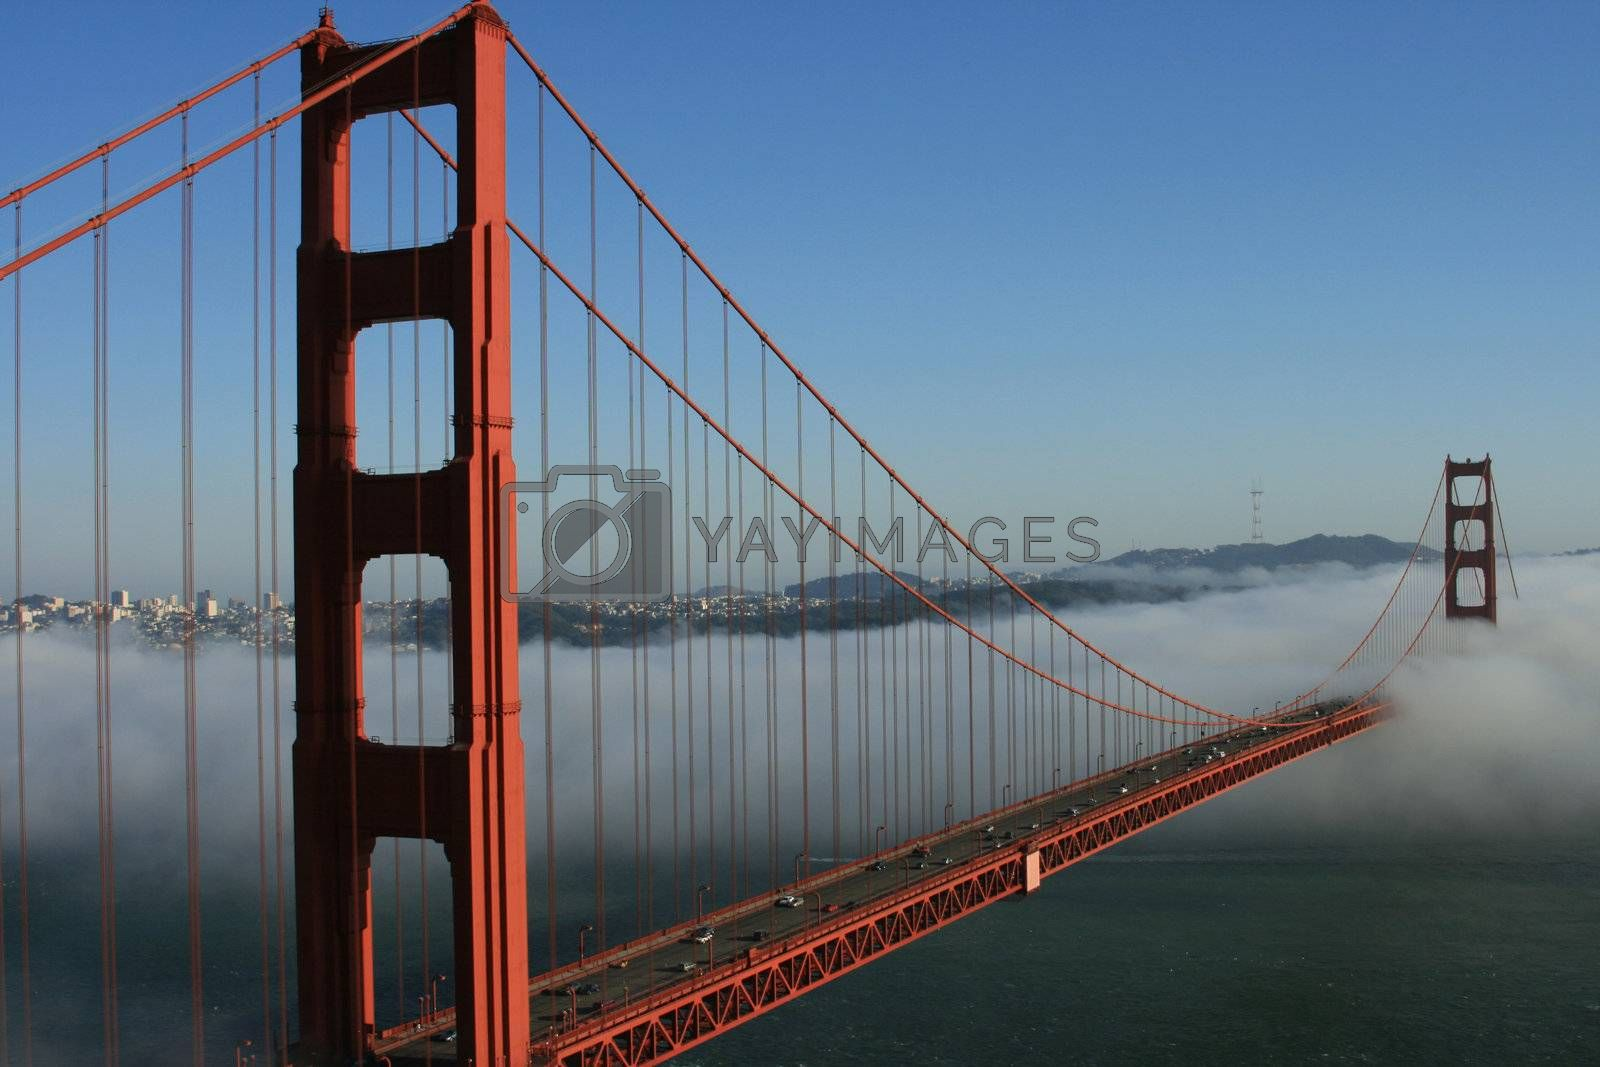 The iconic Golden Gate Bridge in San Francisco, California. Viewed from the Marin Headlands with the city of San Francisco in the background.